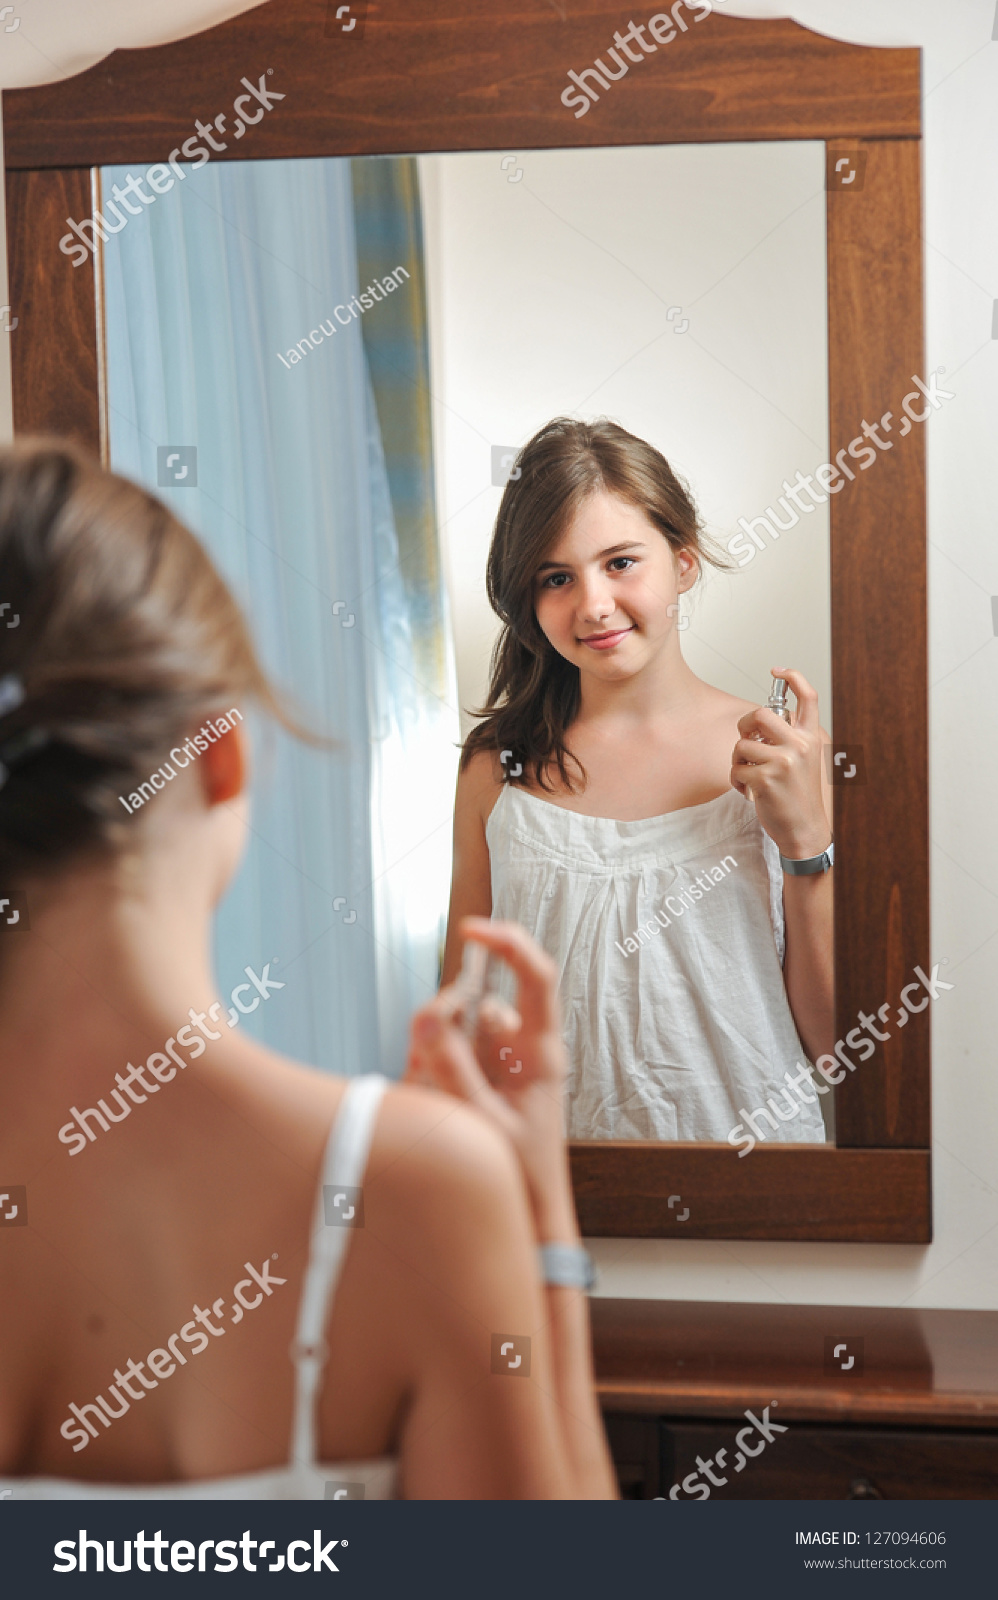 Beautiful Teen Girl Studies Her Appearance Stock Photo